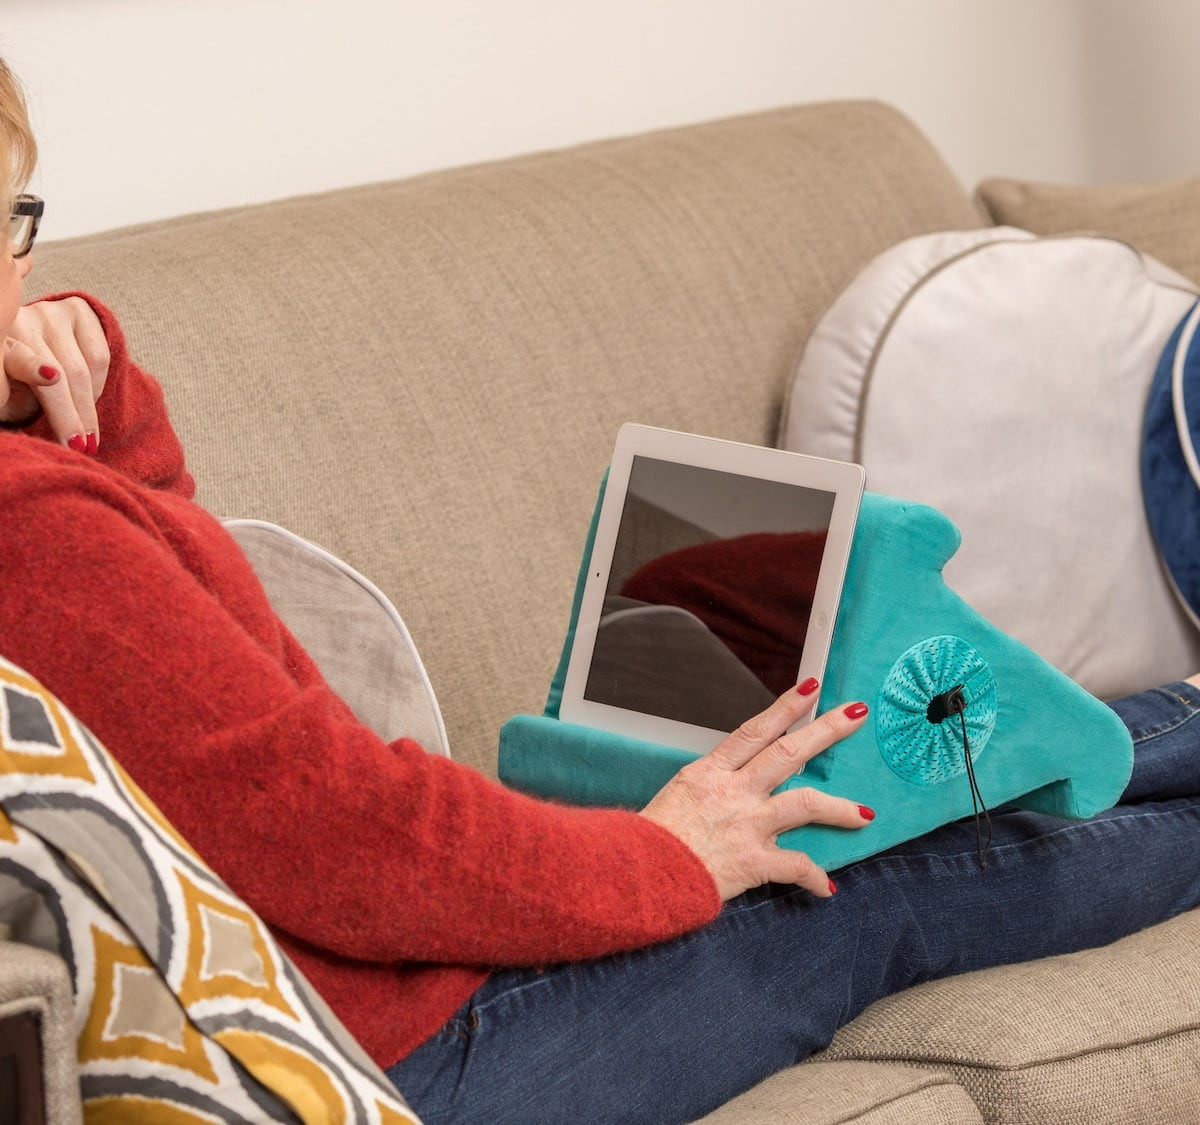 Flippy Soft Tablet Lap Stand offers three comfortable viewing angles